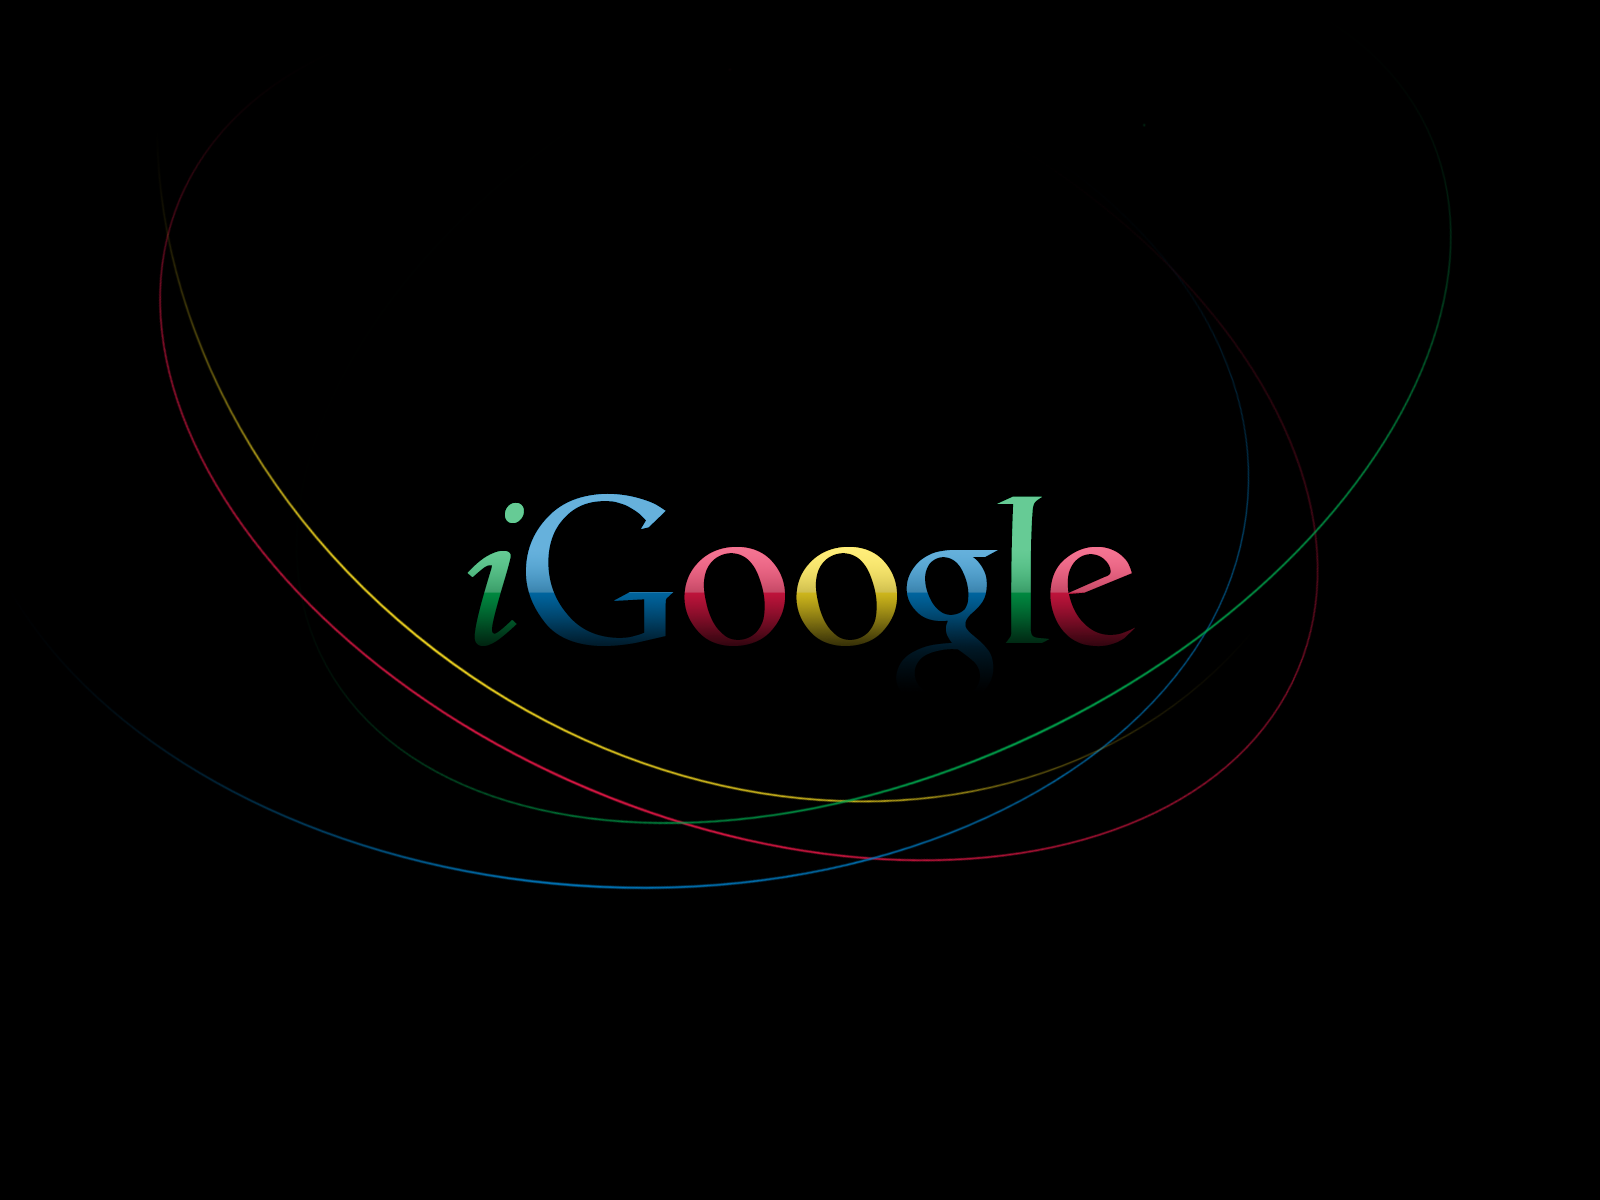 Wallpapers HD Google 1600x1200